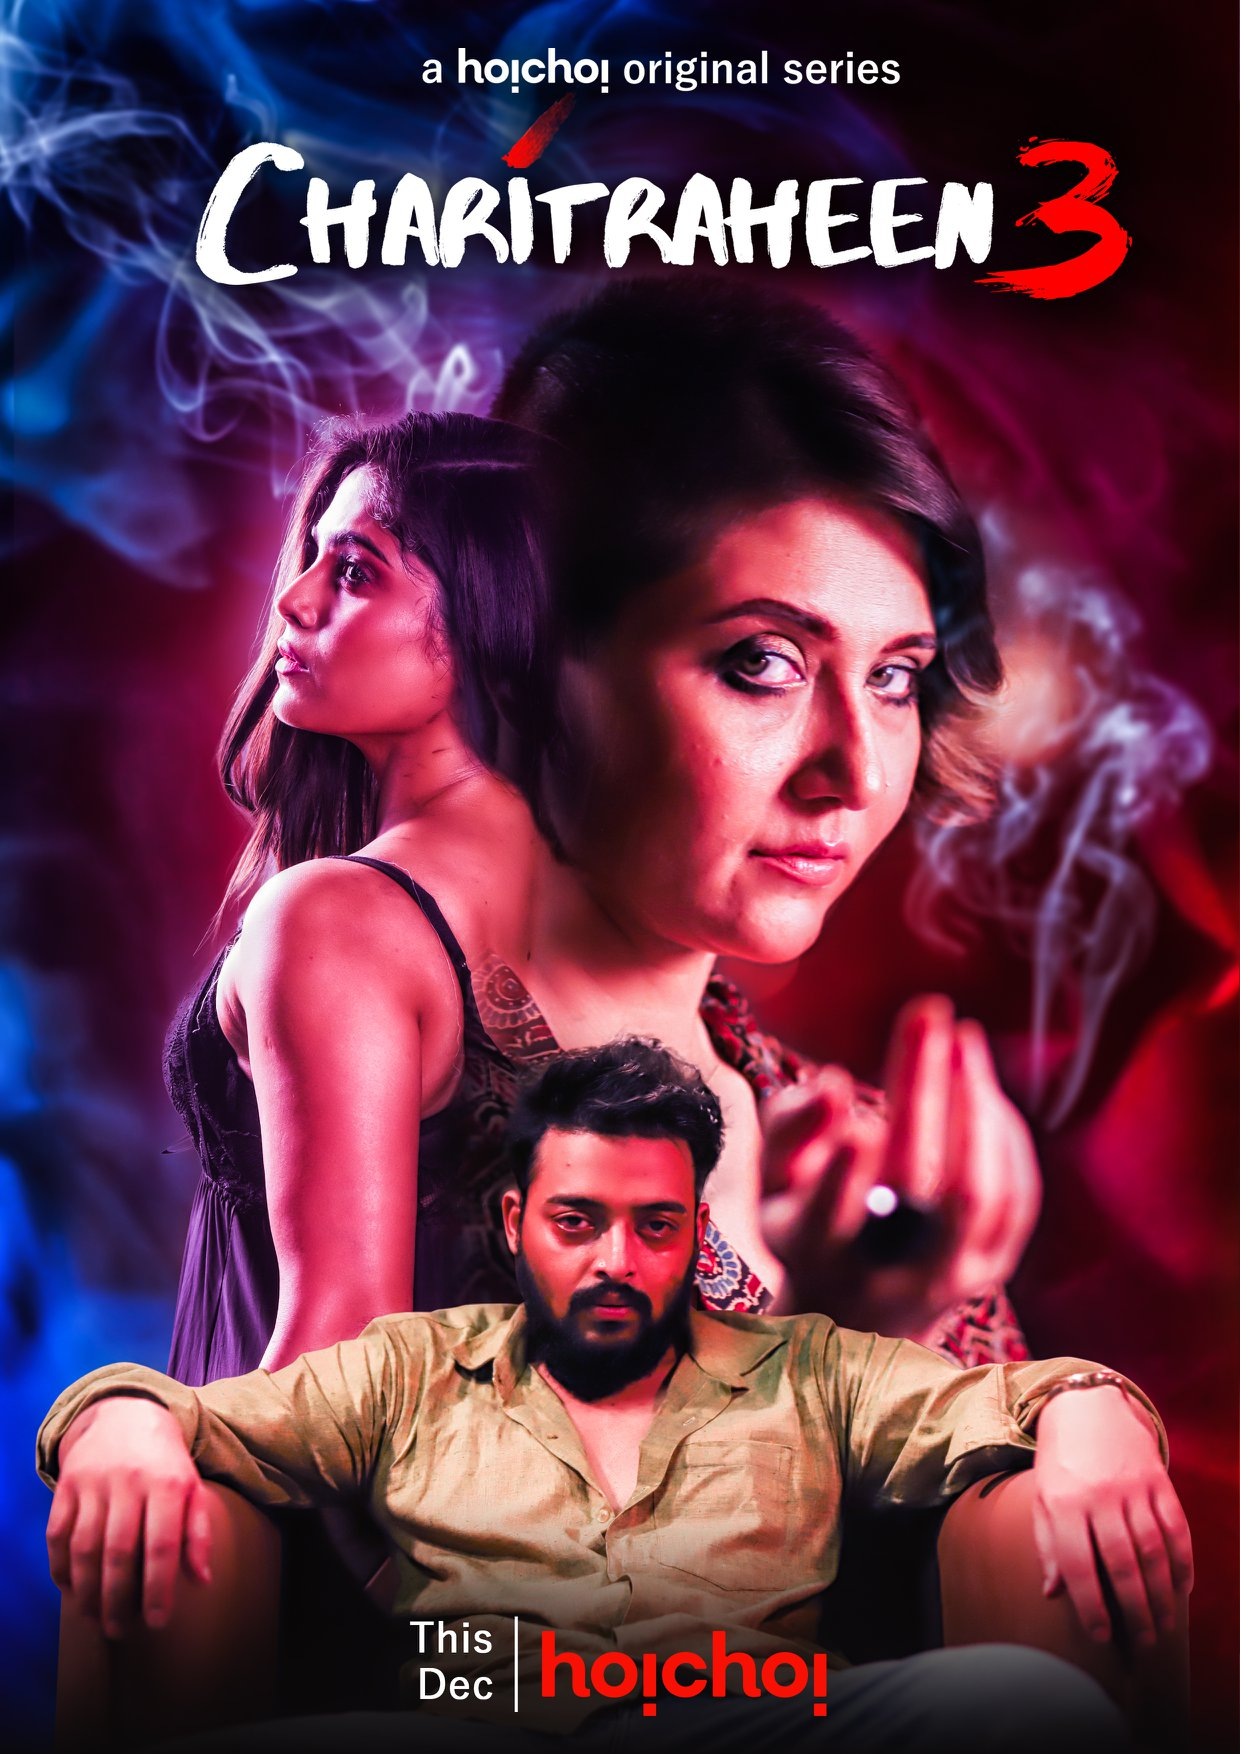 Charitraheen 3 (2020) S03 Bengali Hoichoi Original Complete Web Series 720p HDRip 1.5GB Download